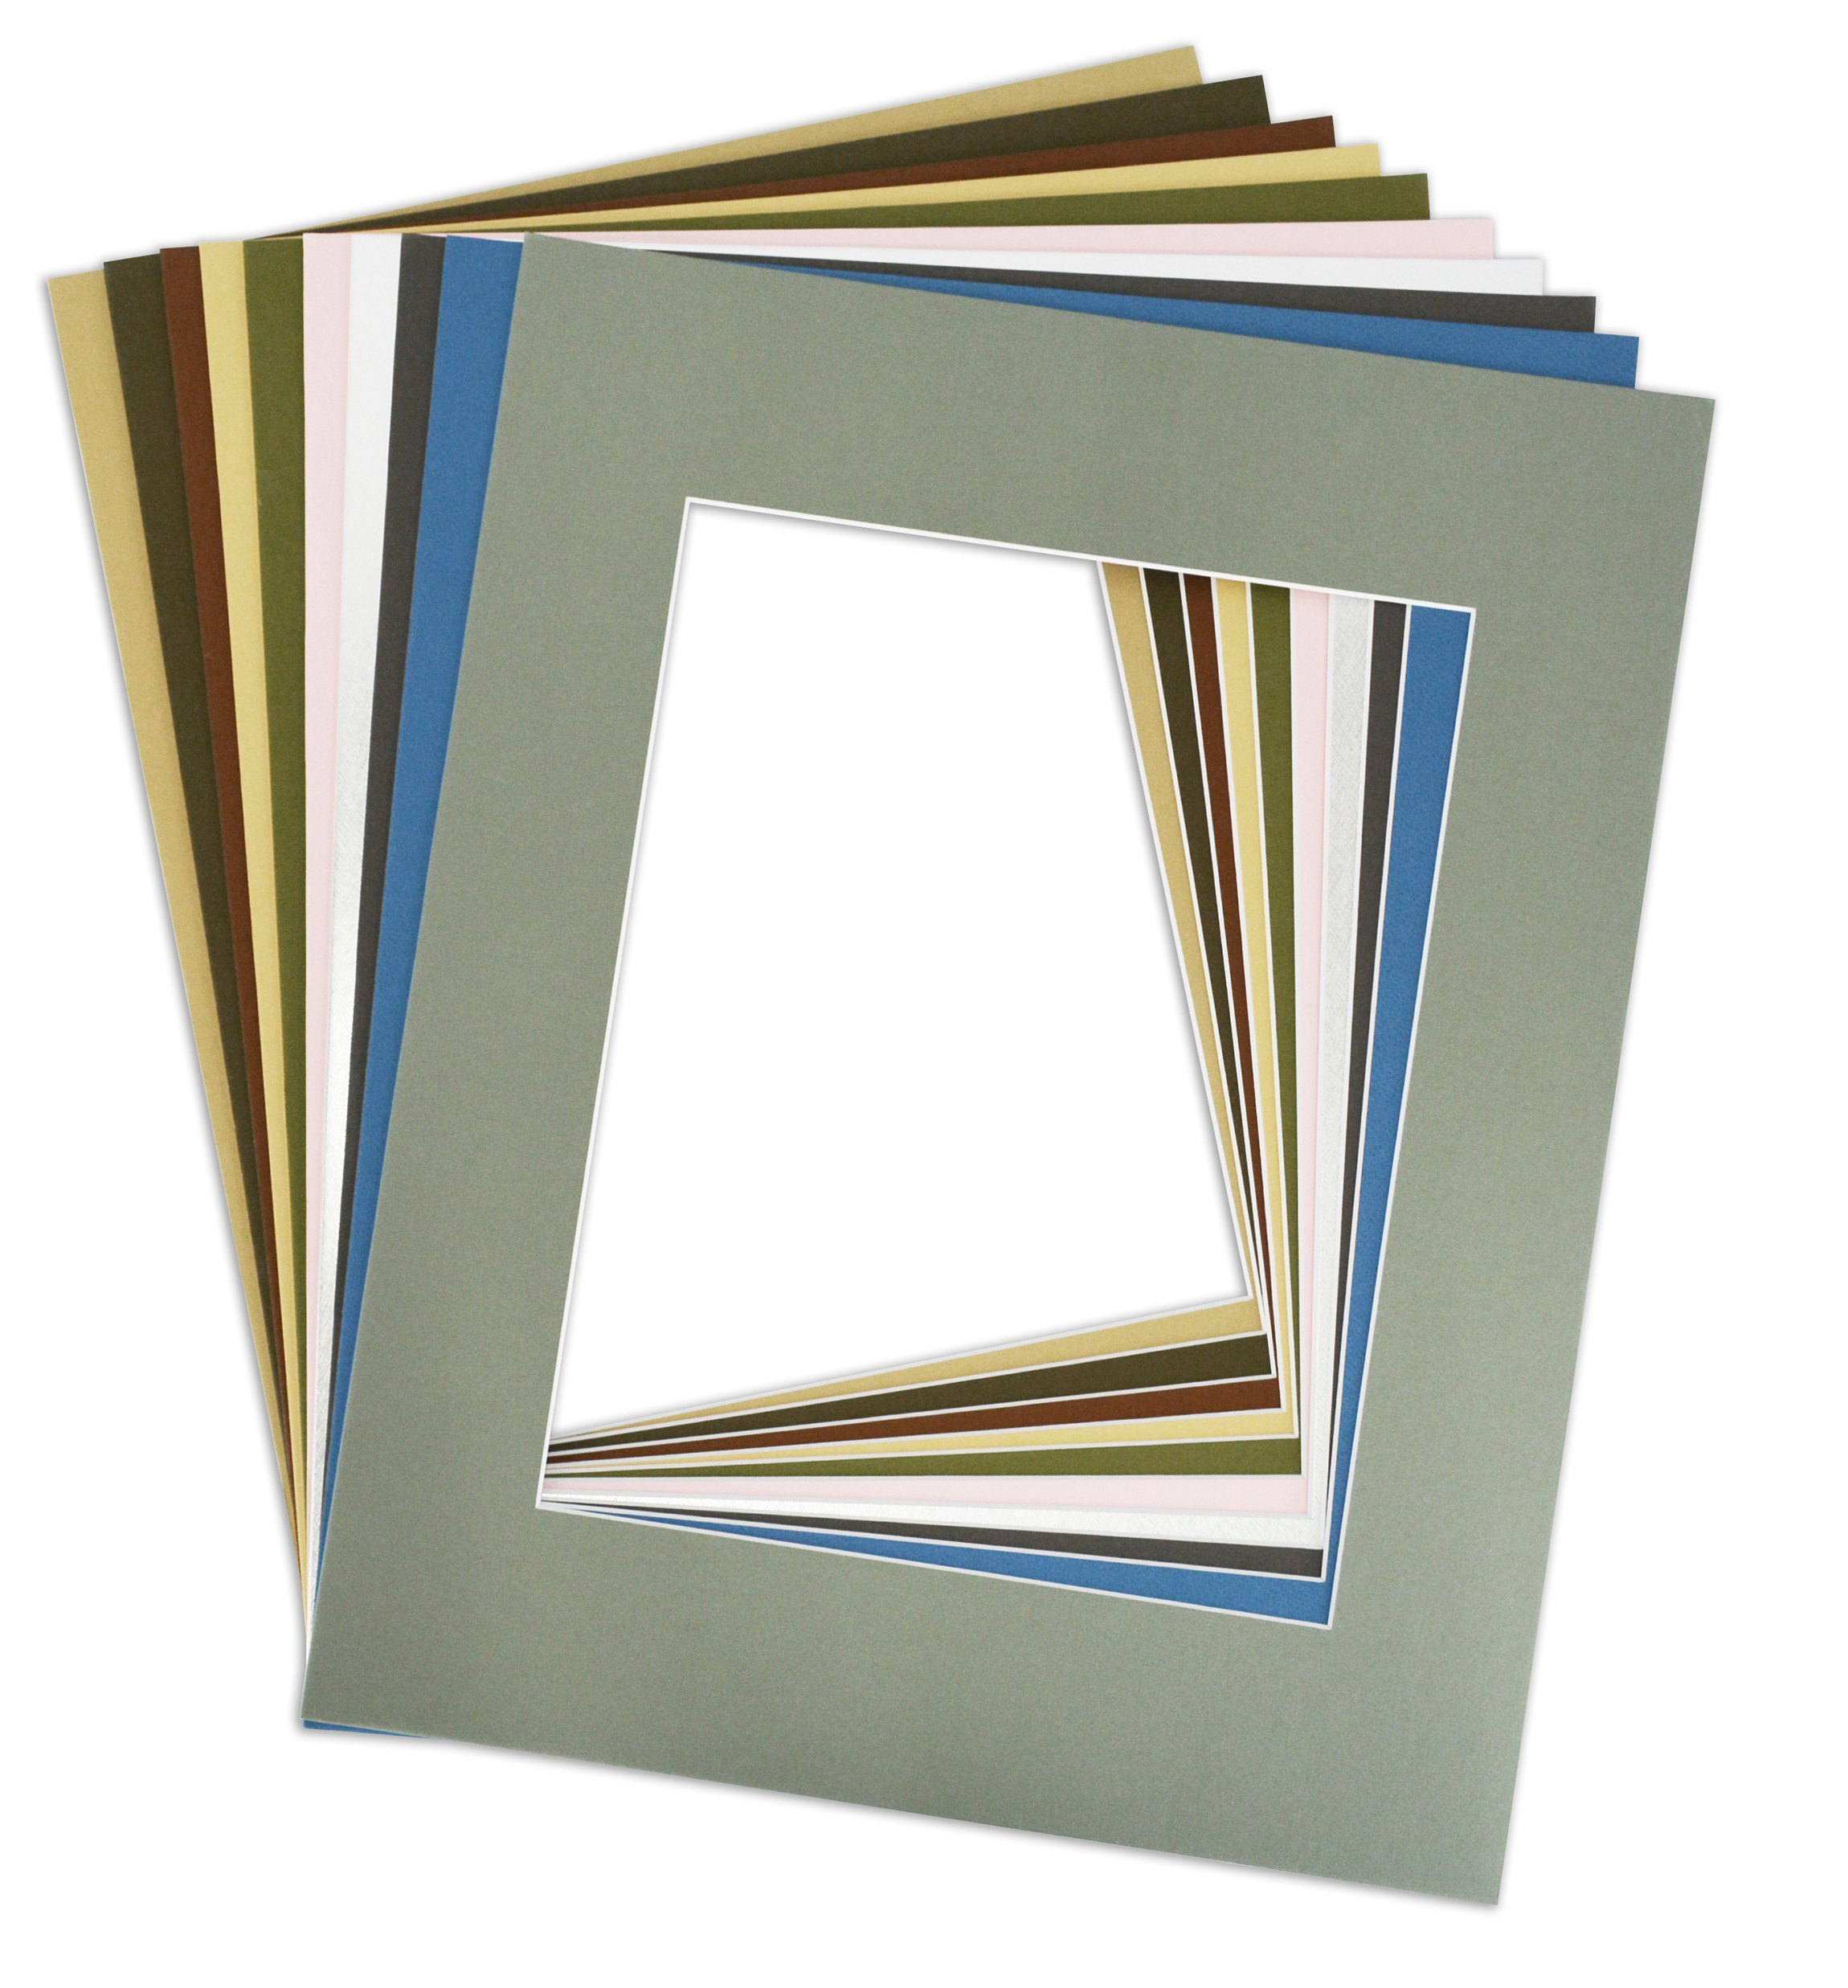 Golden State Art Pack of 10 MIXED COLORS 16x20 Picture Mats Matting with White Core Bevel Cut for 11x14 Pictures